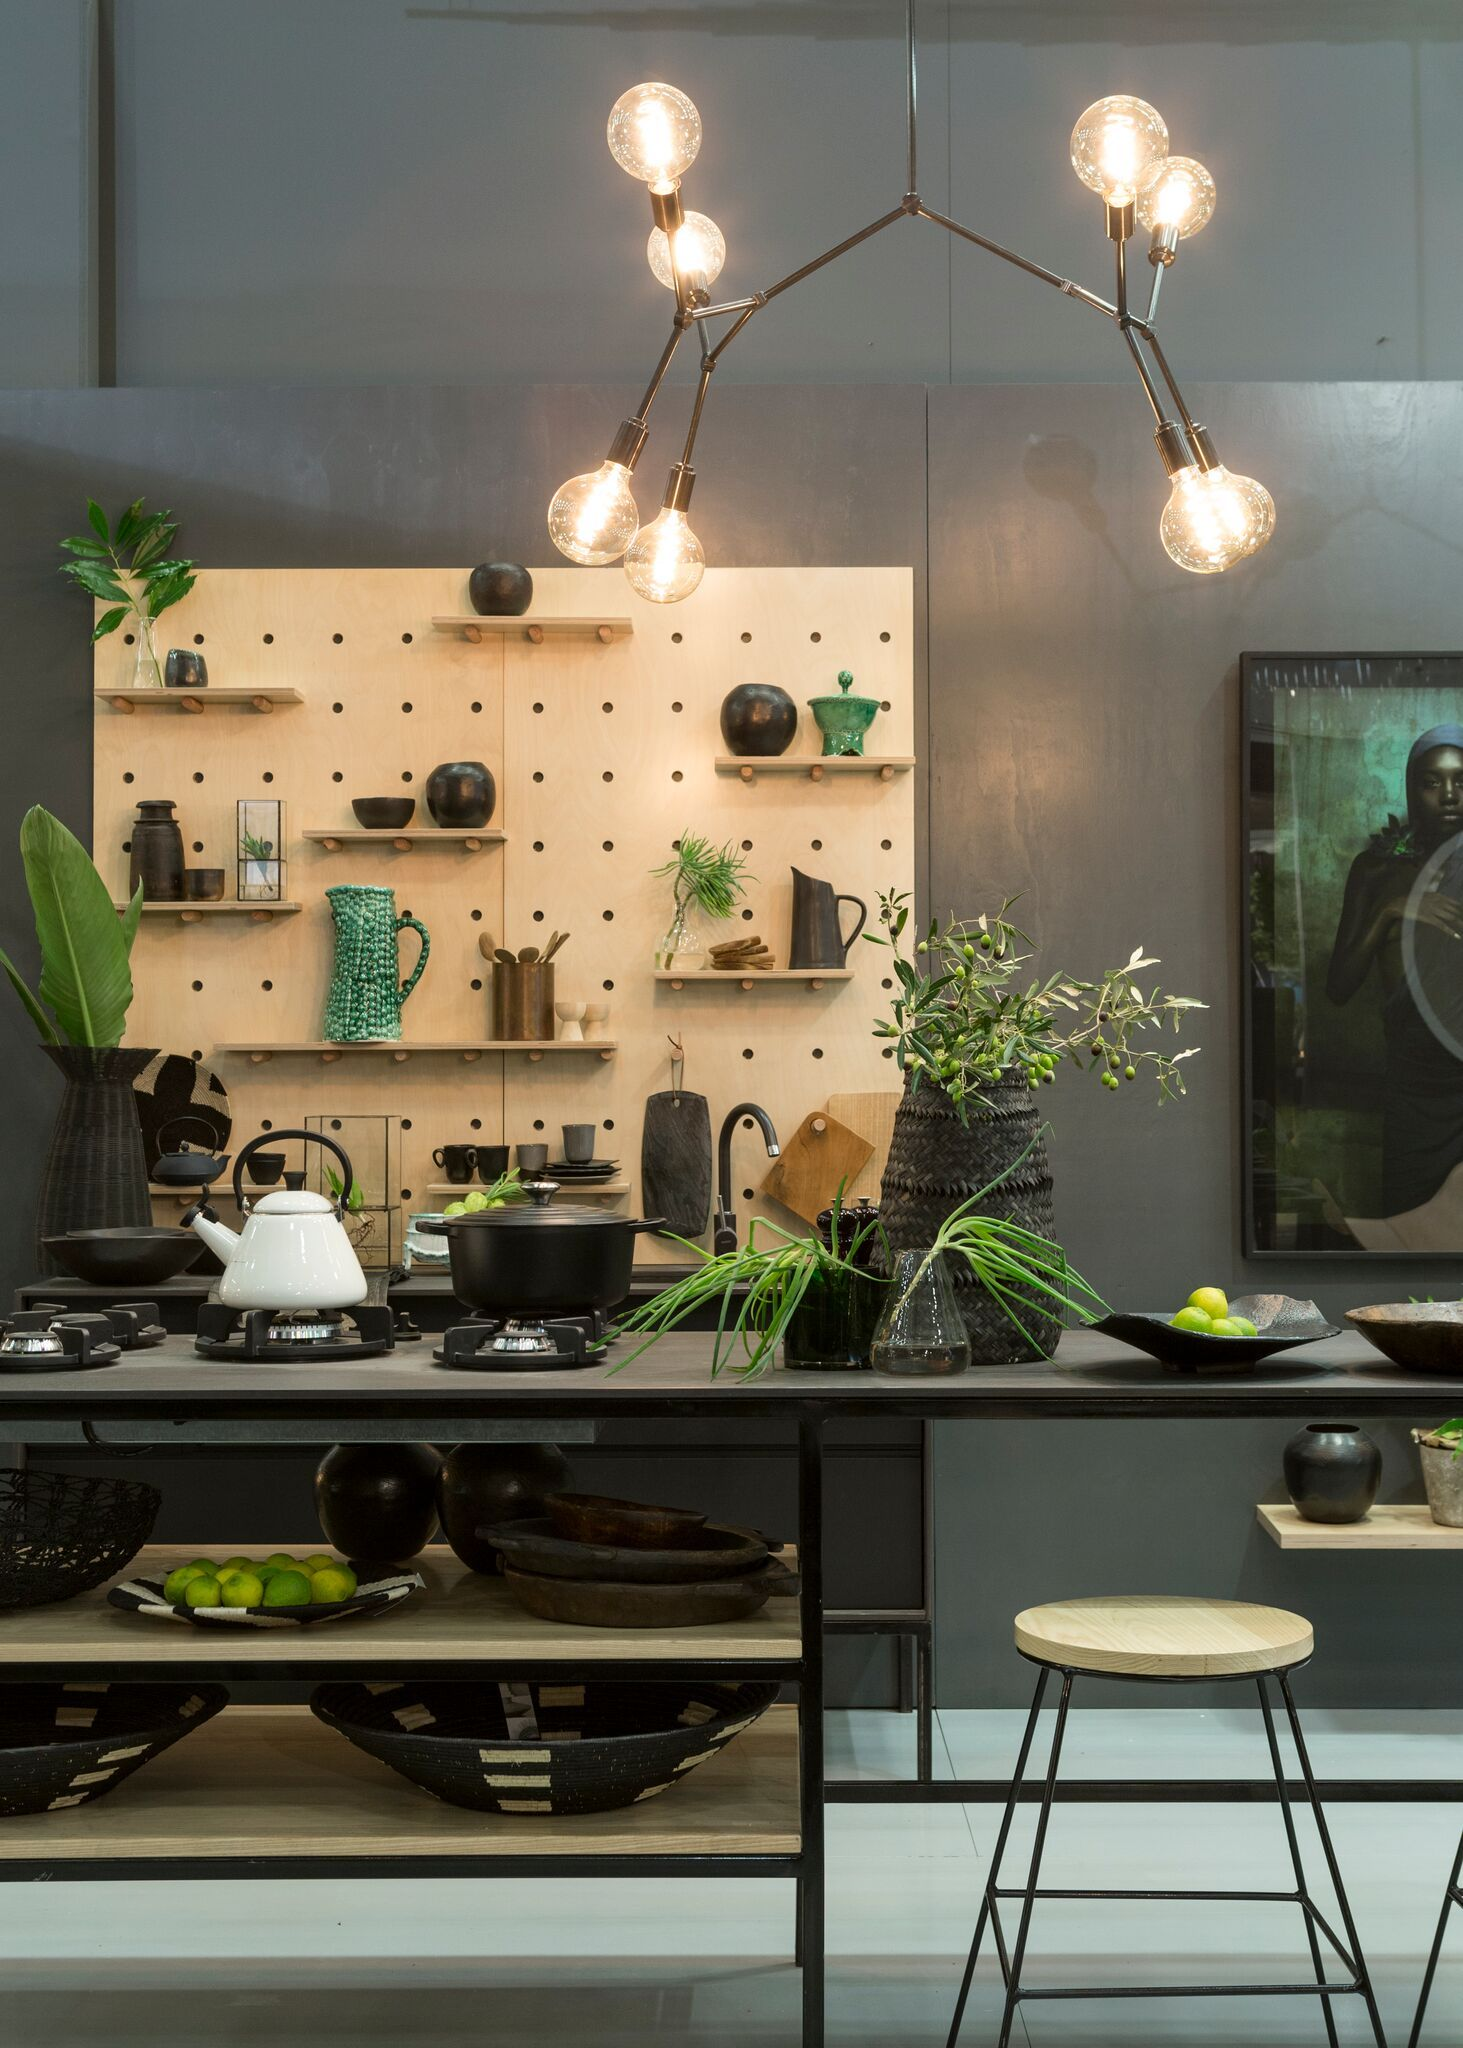 Cool Plants For Your Room 47 Easy Ways To Get Organized Making Use Of Diy Pegboard